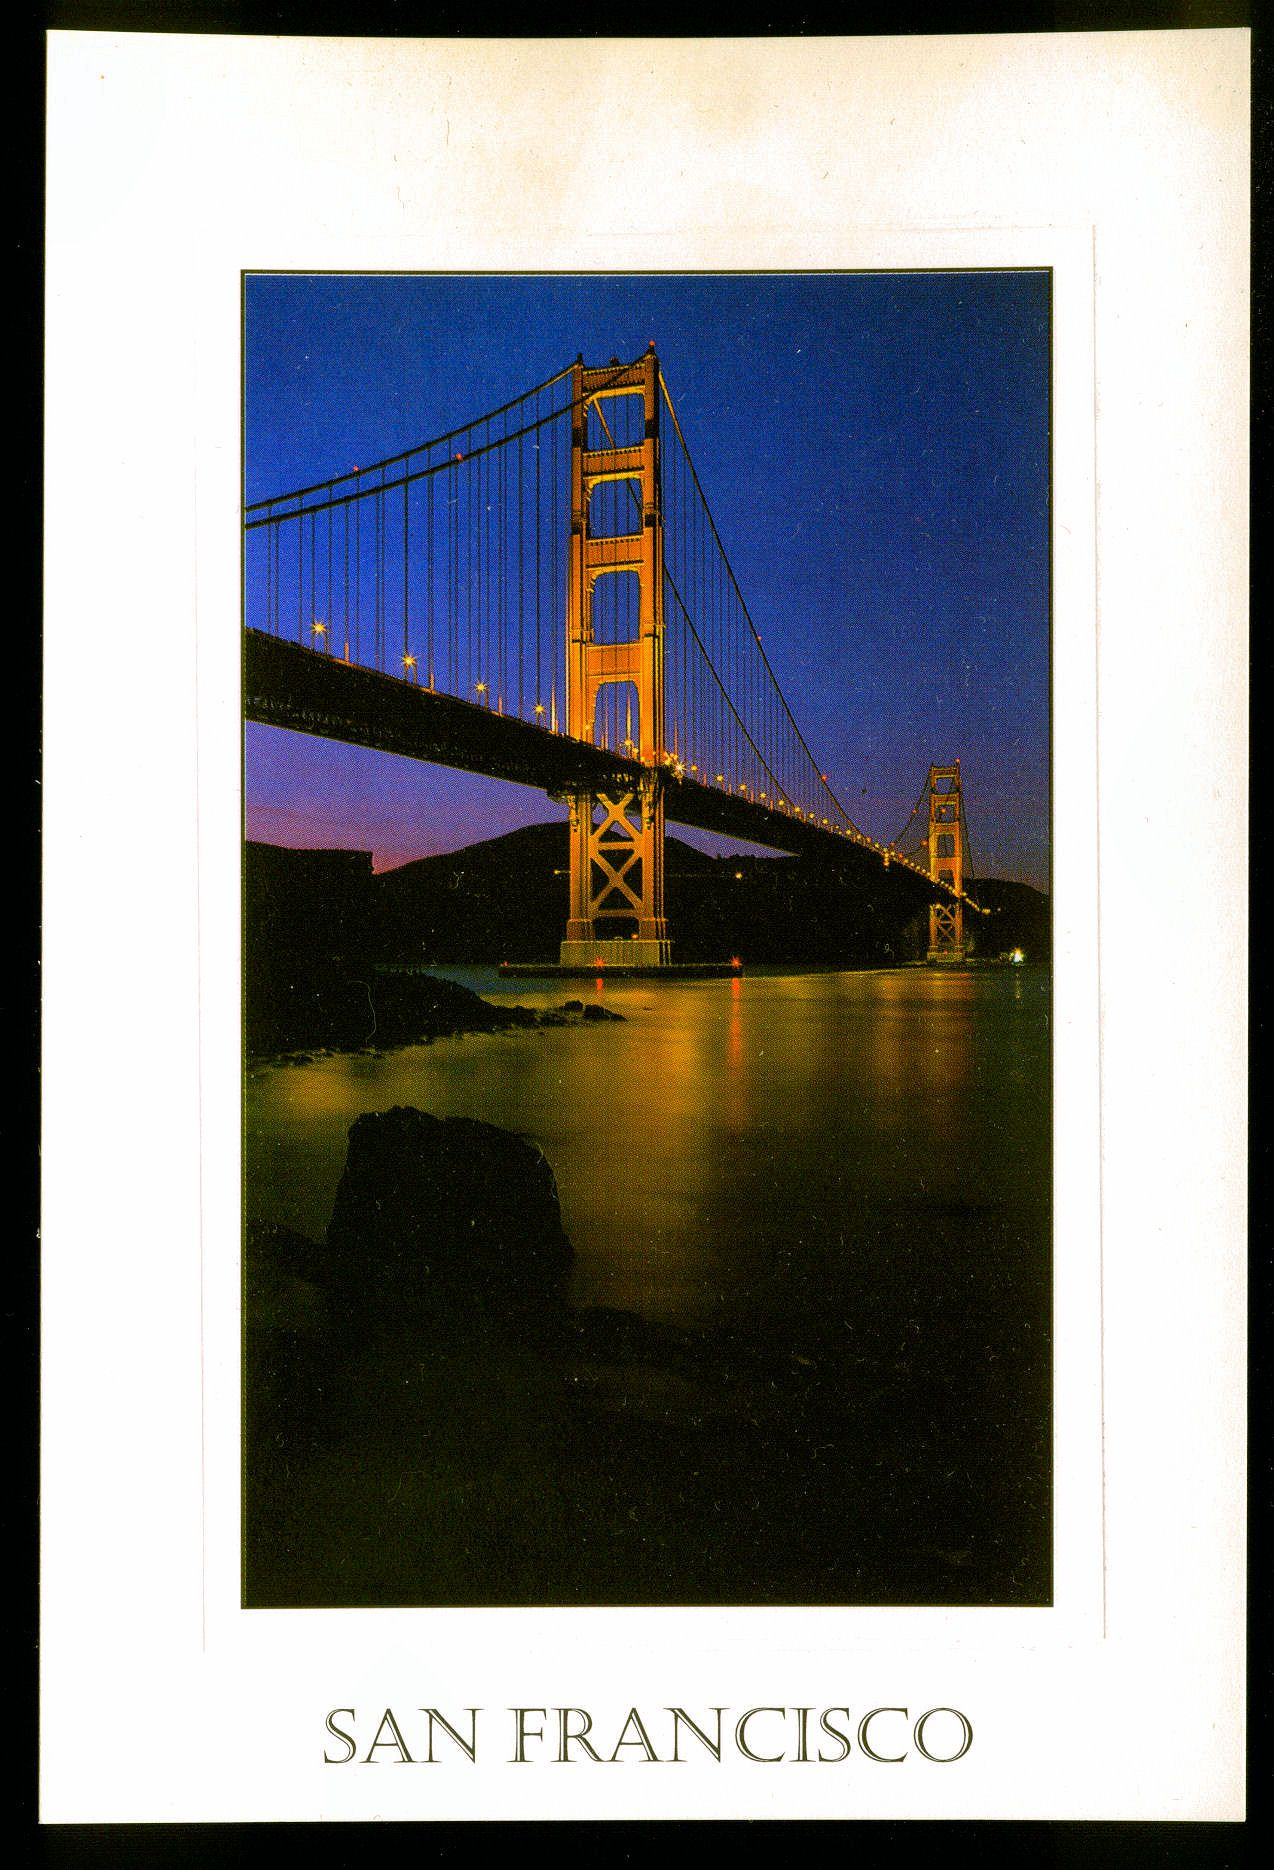 The Golden Gate Bridge reflects on the